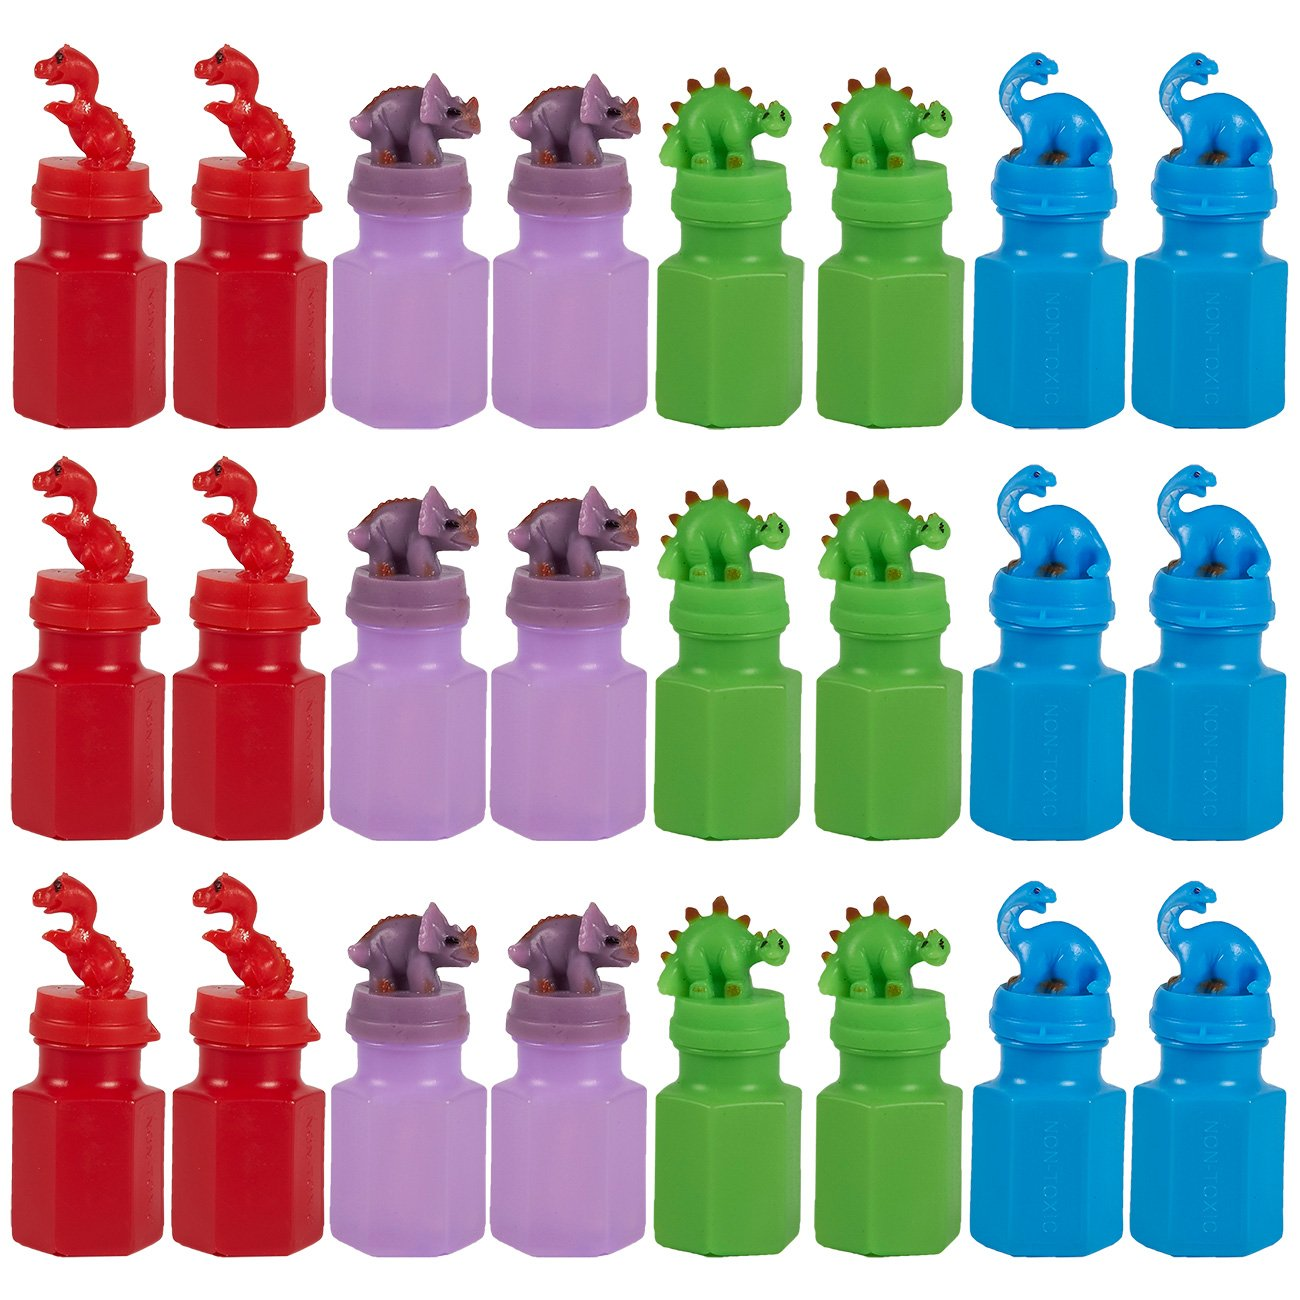 24 Pack Party Favors for Kids Dinosaur Party Supplies Play Bubbles Bubble Wand Party Supplies for Kids Parties Celebrations Birthdays 4 Colors 17.4ml 0.6oz 1.25 x 3 x 1.25 Inches